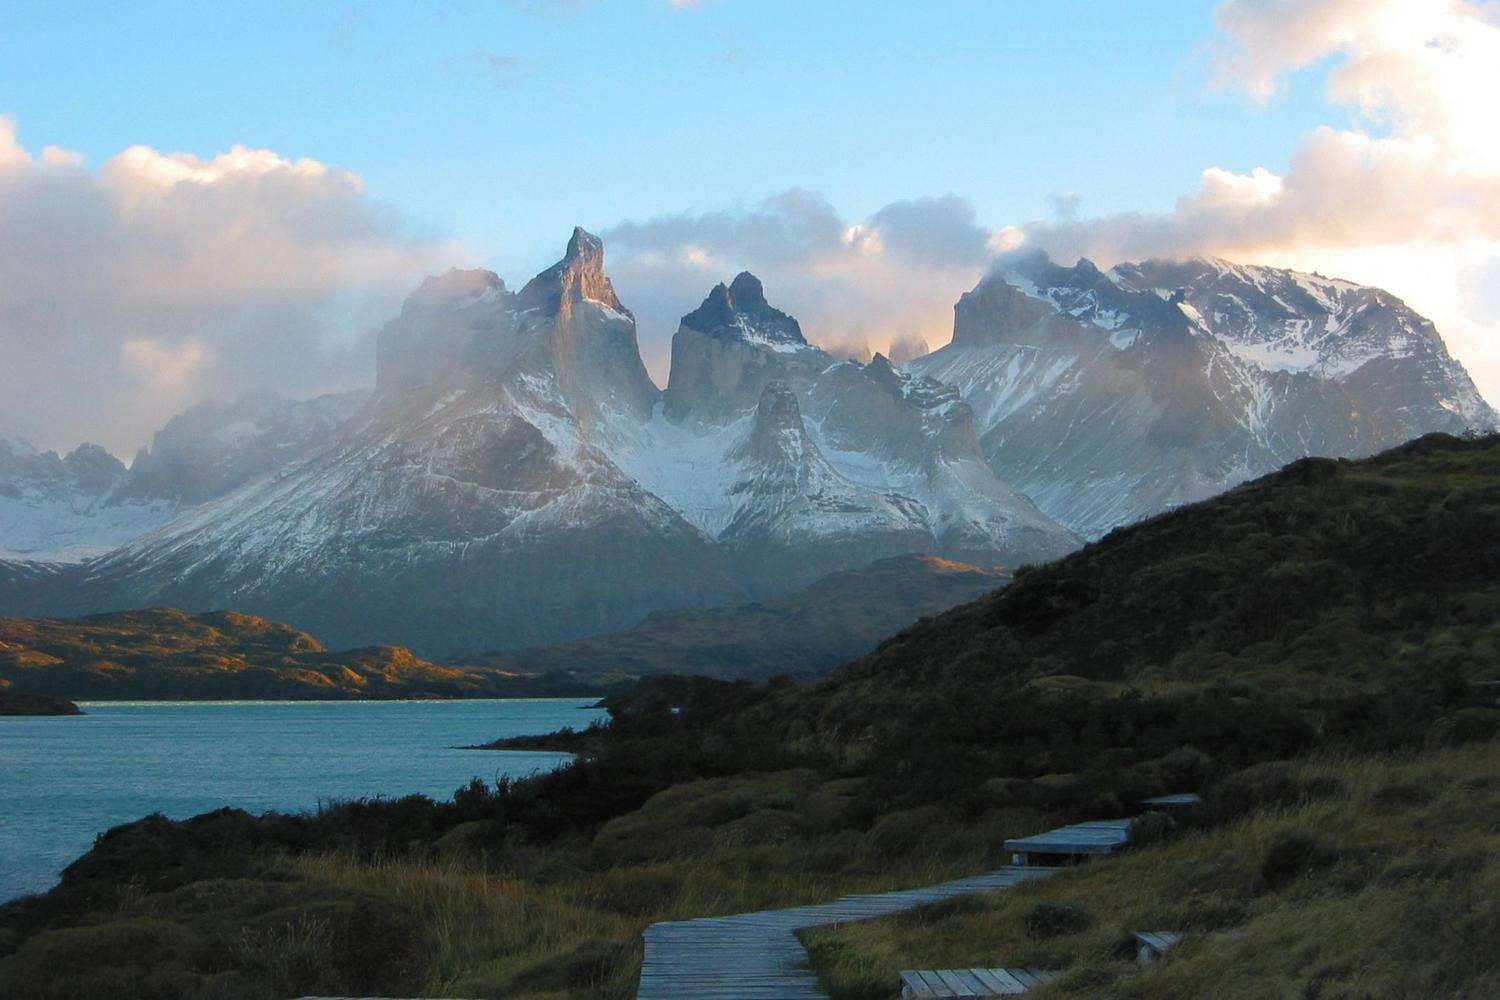 Sunrise over the Paine mountains in Chilean Patagonia